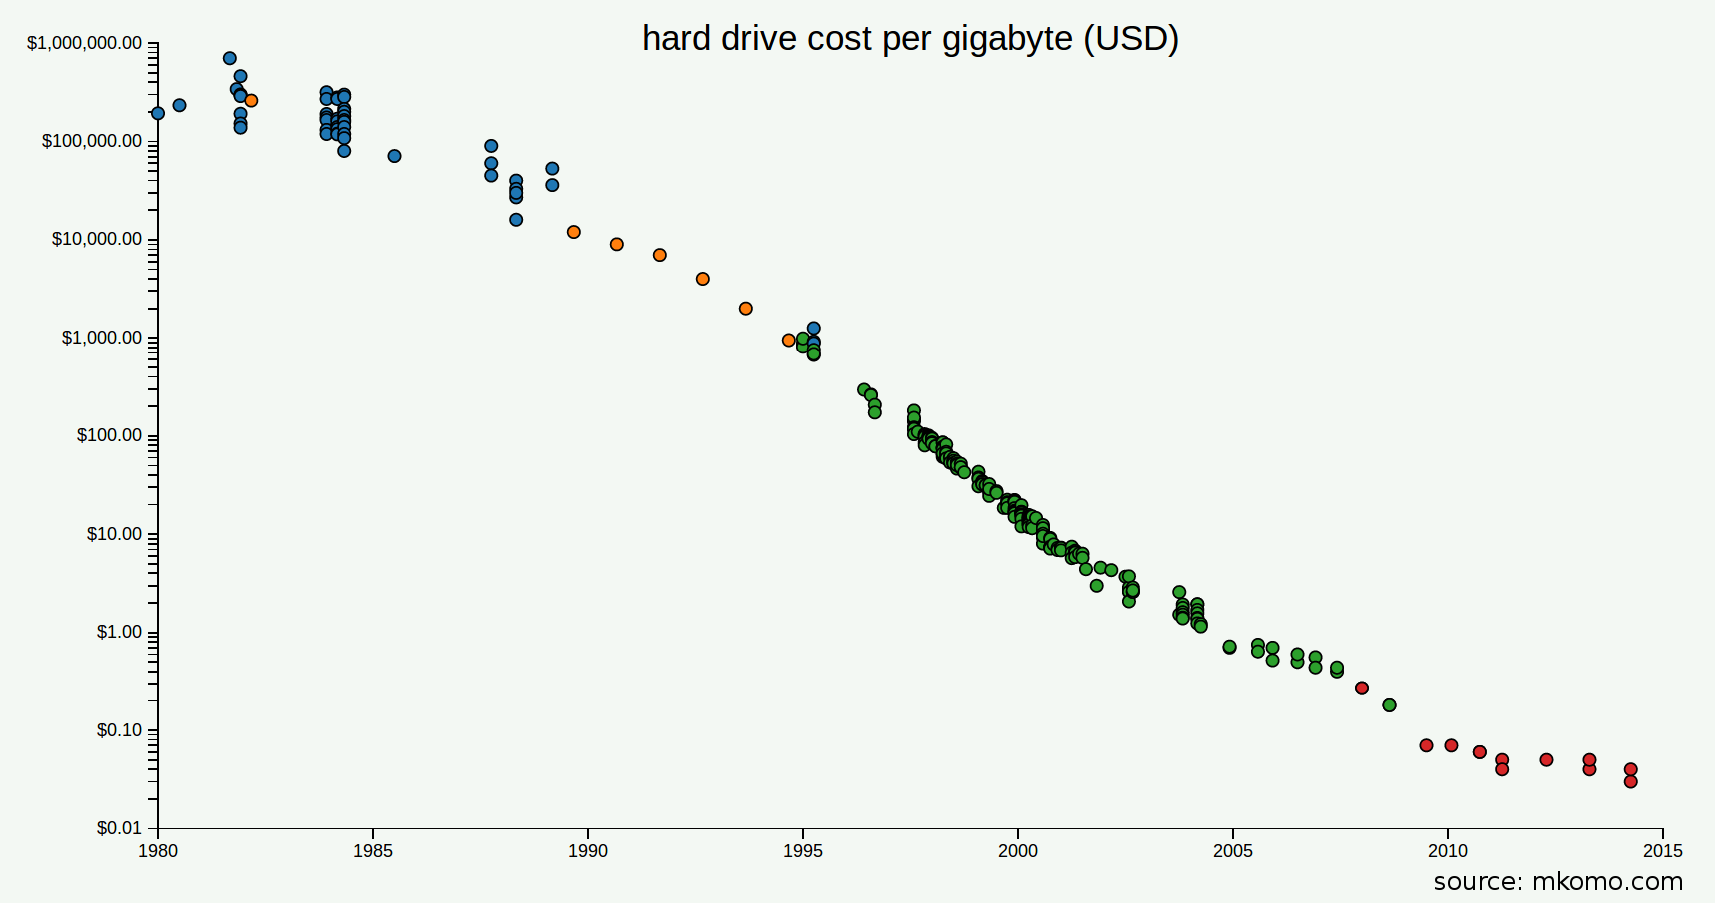 cost-per-gigabyte-large.png